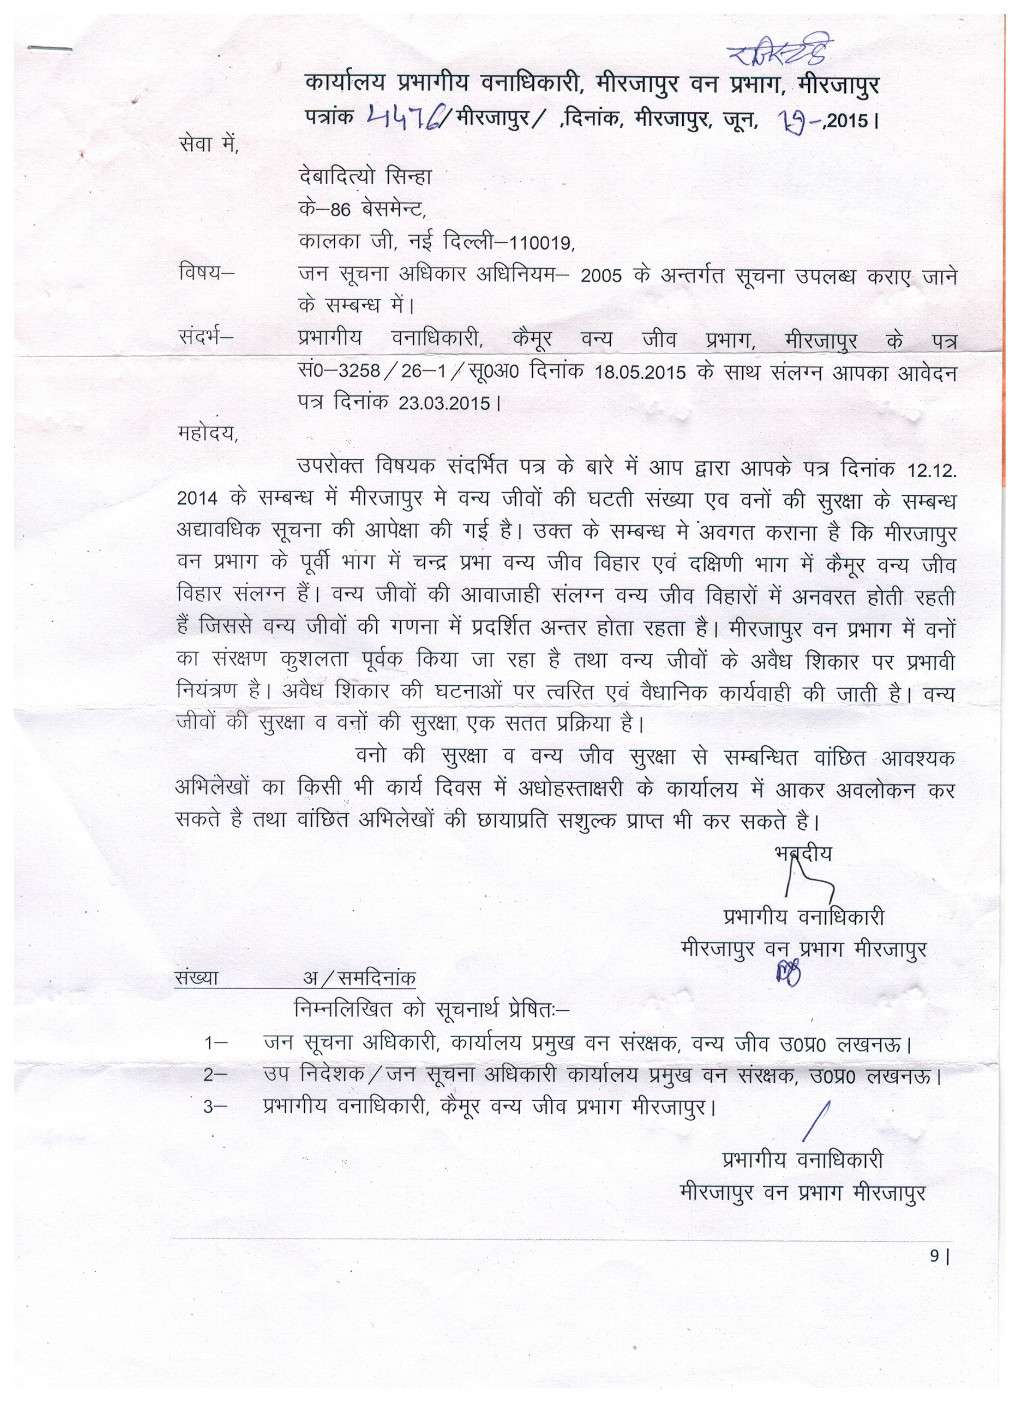 Scan-Reply-of-DFO-Mirzapur